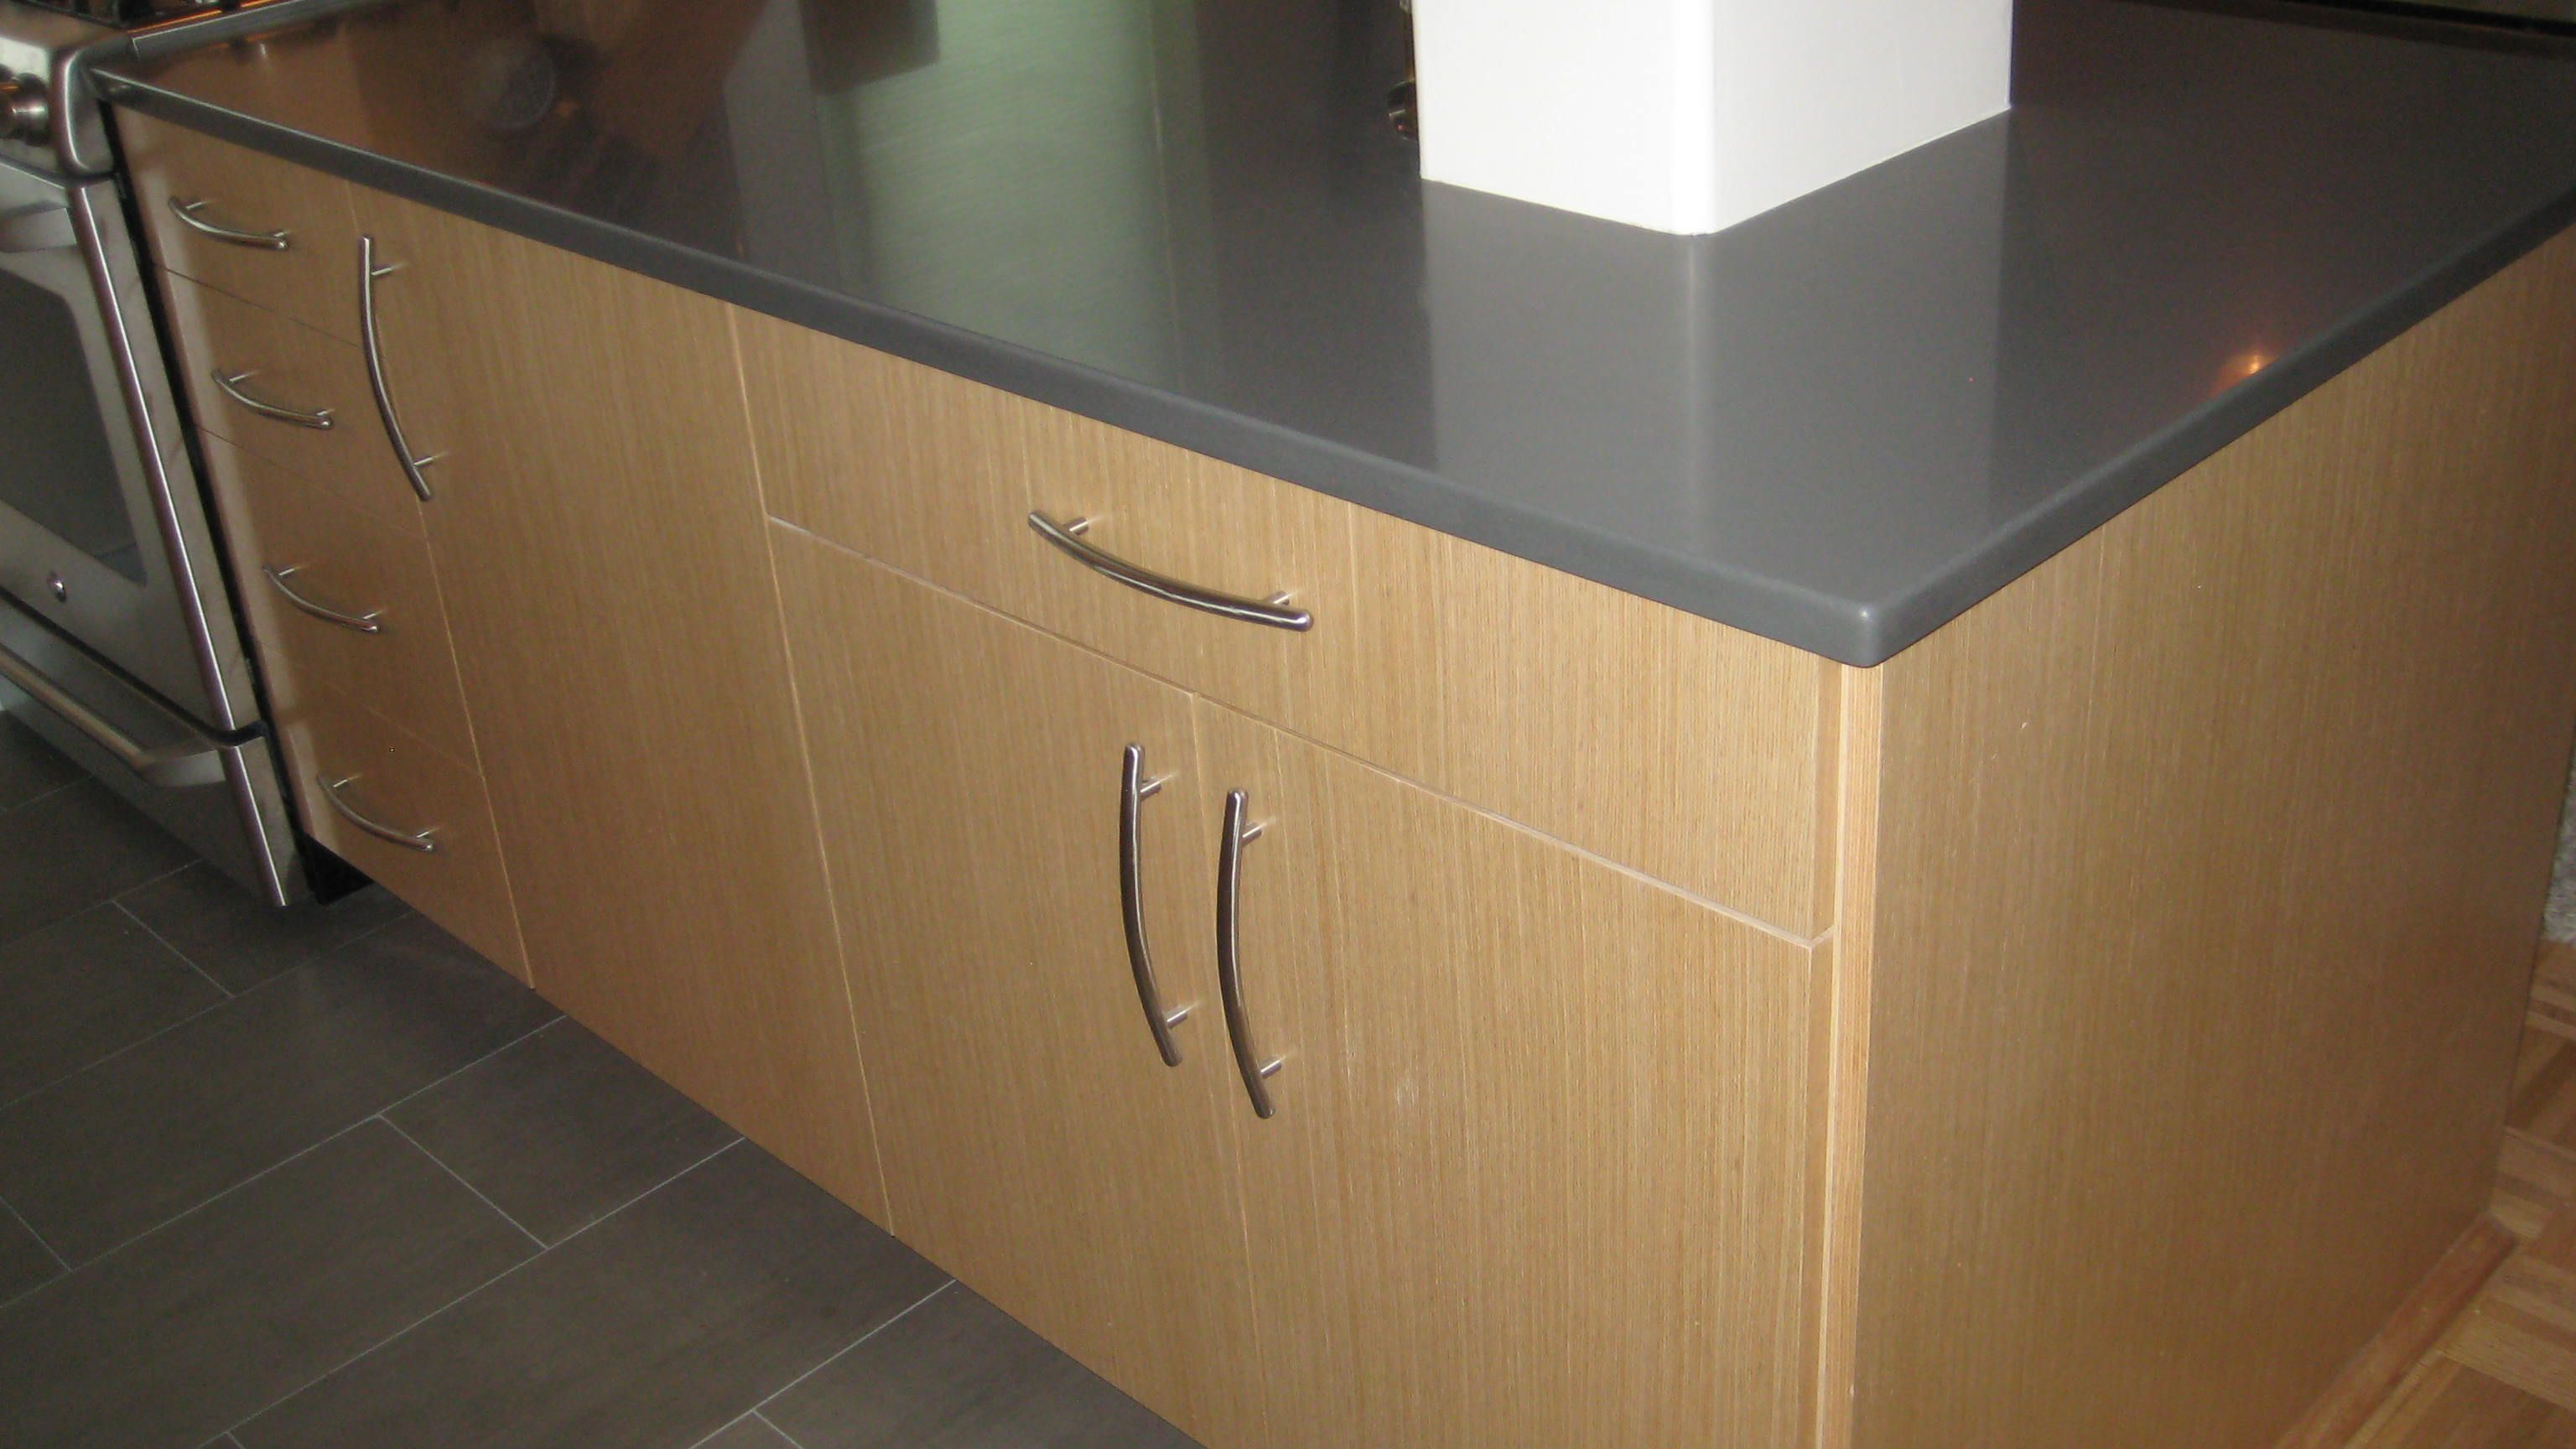 Best Rift Sawn White Oak Cabinets Kitchen Modern Google 640 x 480